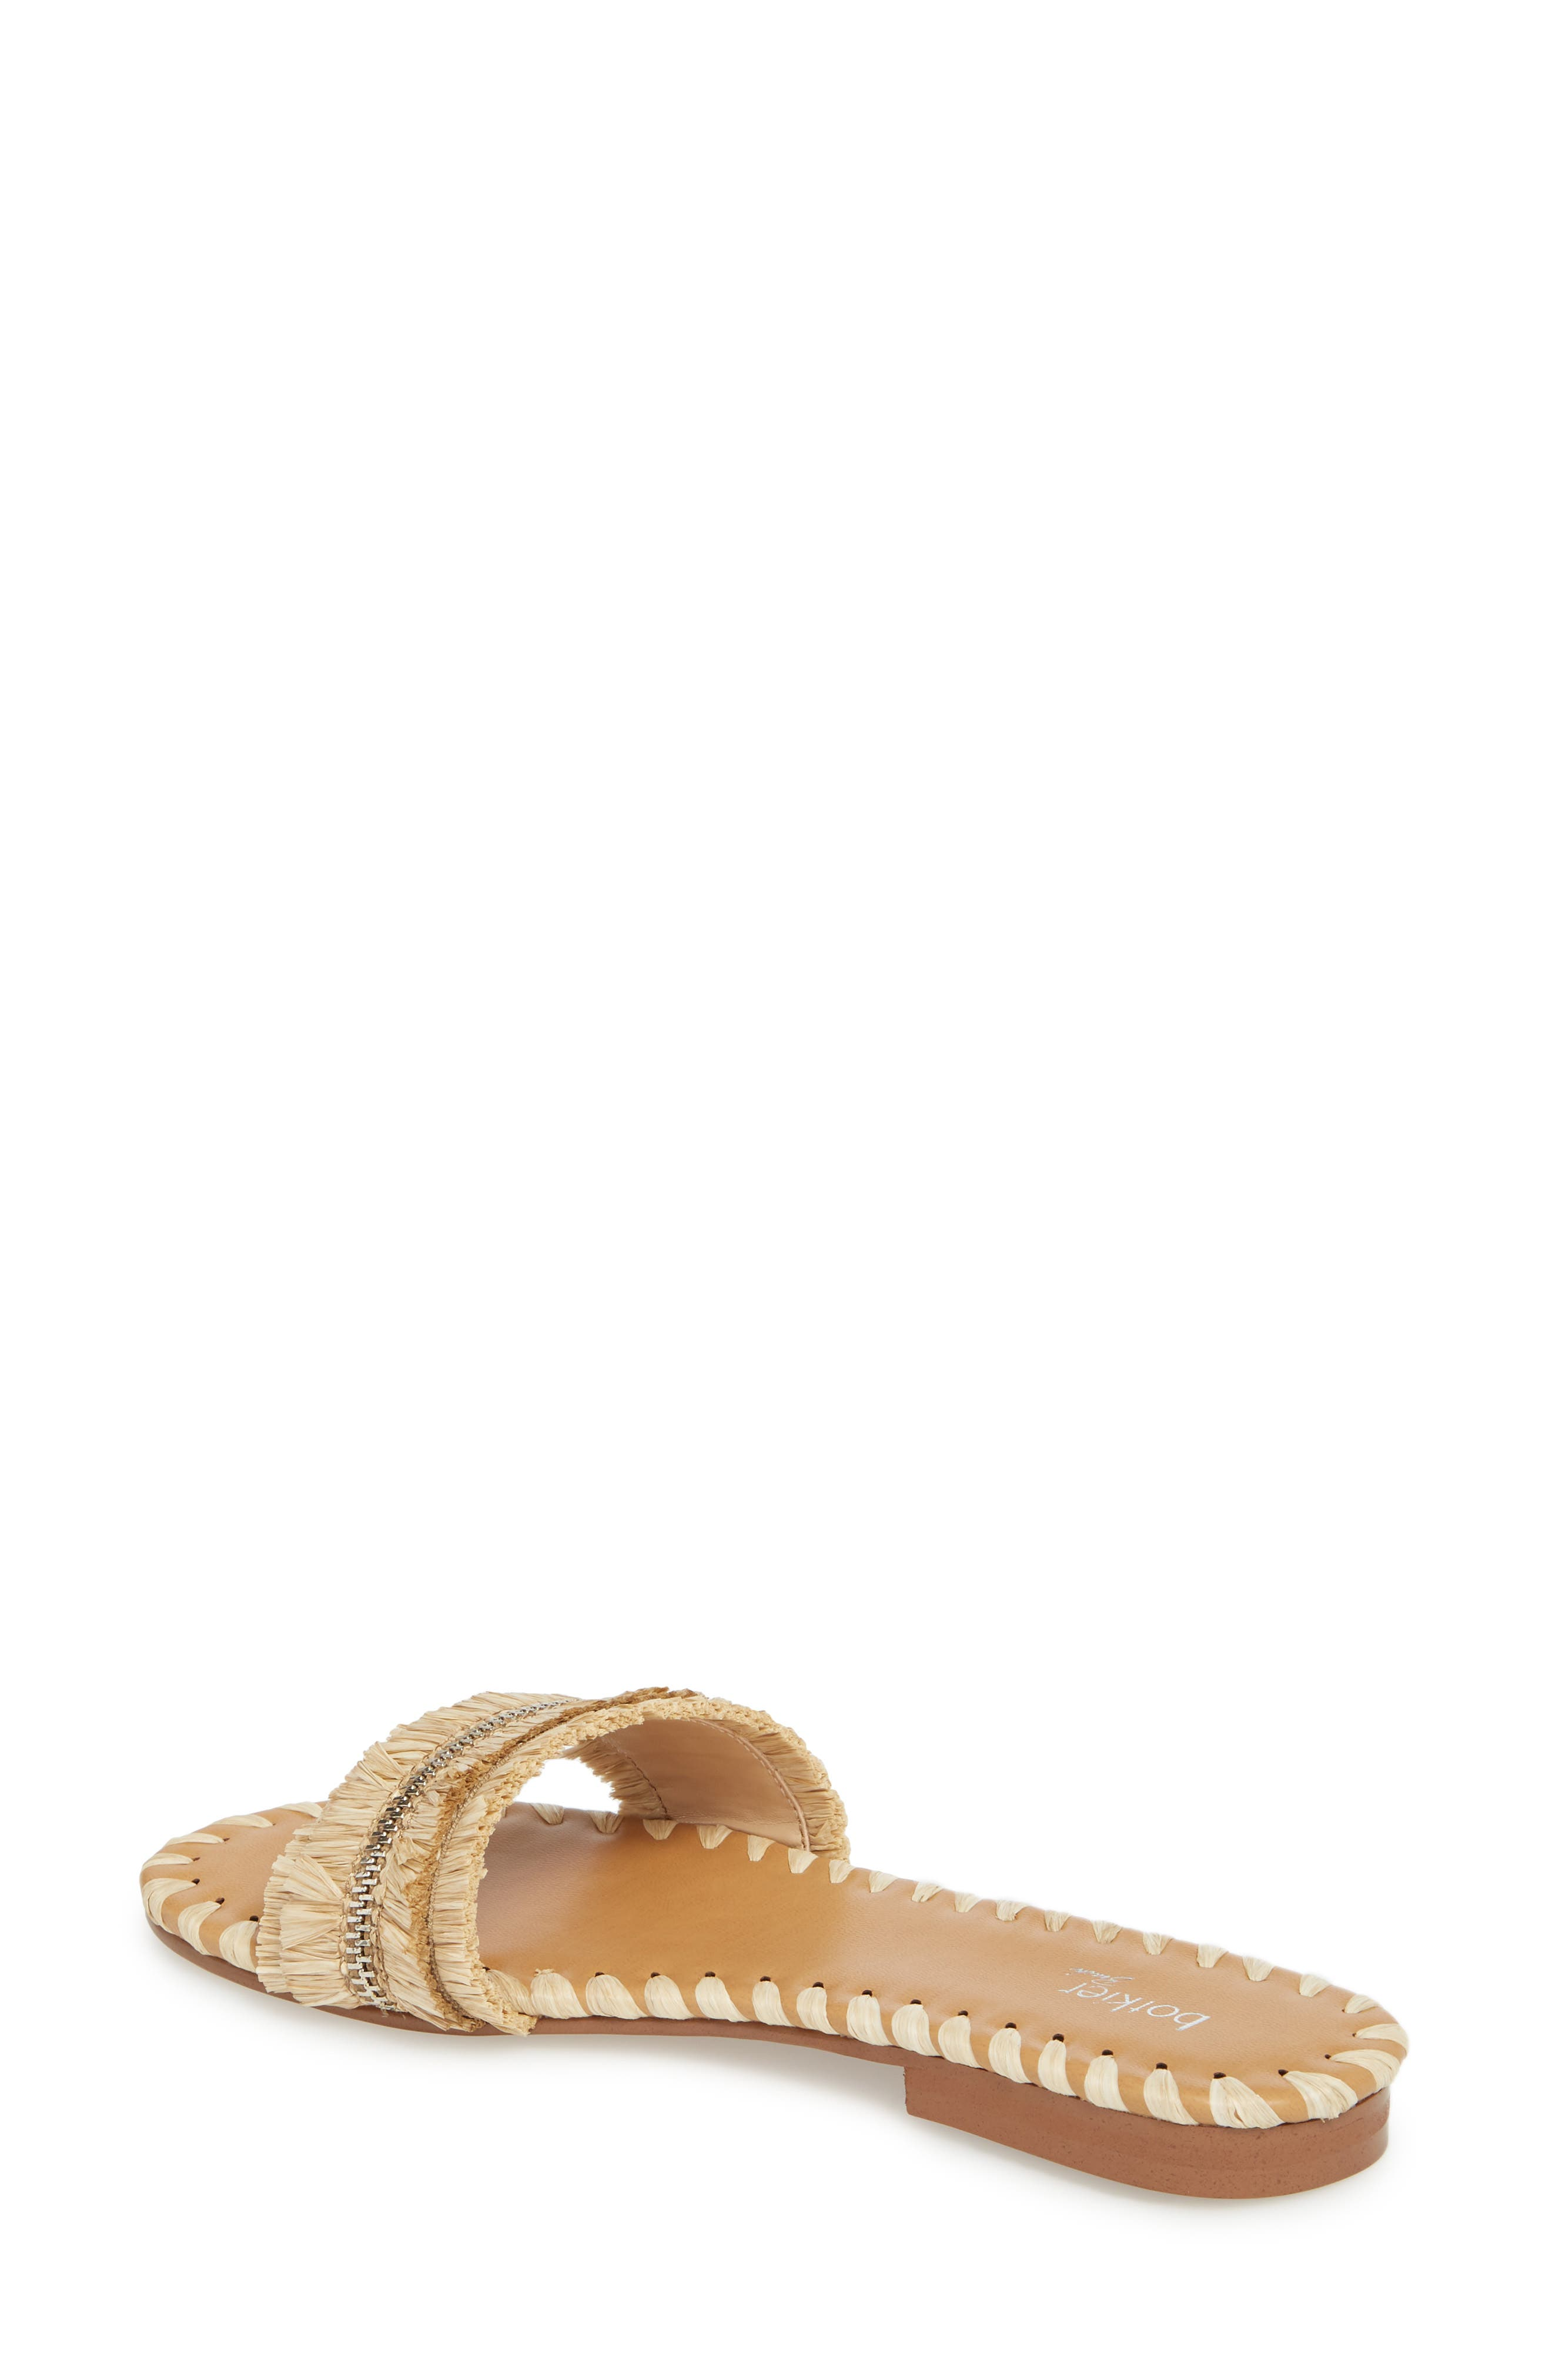 Bonnie Slide Sandal,                             Alternate thumbnail 4, color,